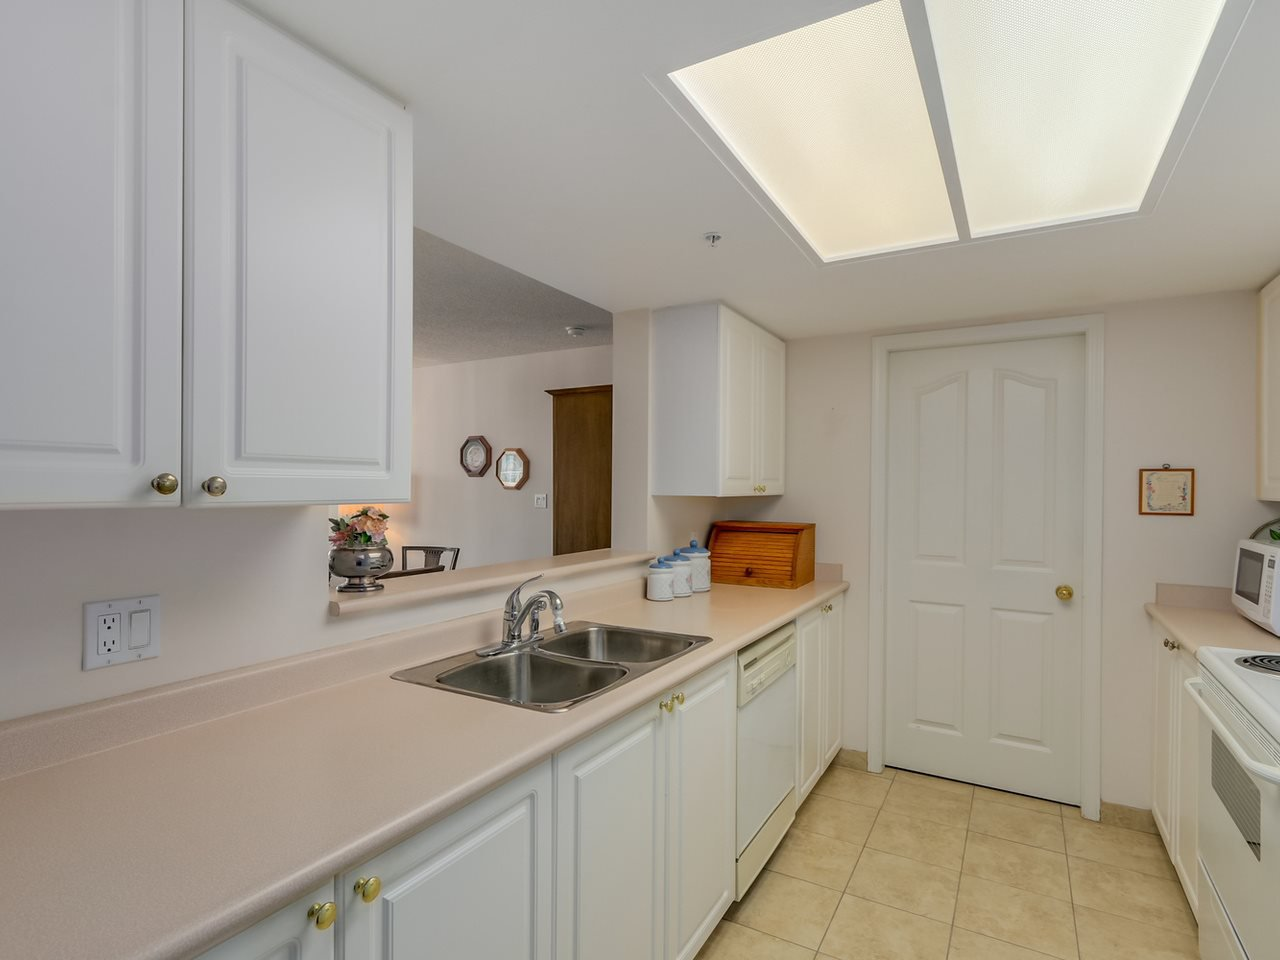 Photo 5: Photos: 403 728 PRINCESS Street in New Westminster: Uptown NW Condo for sale : MLS®# R2061685